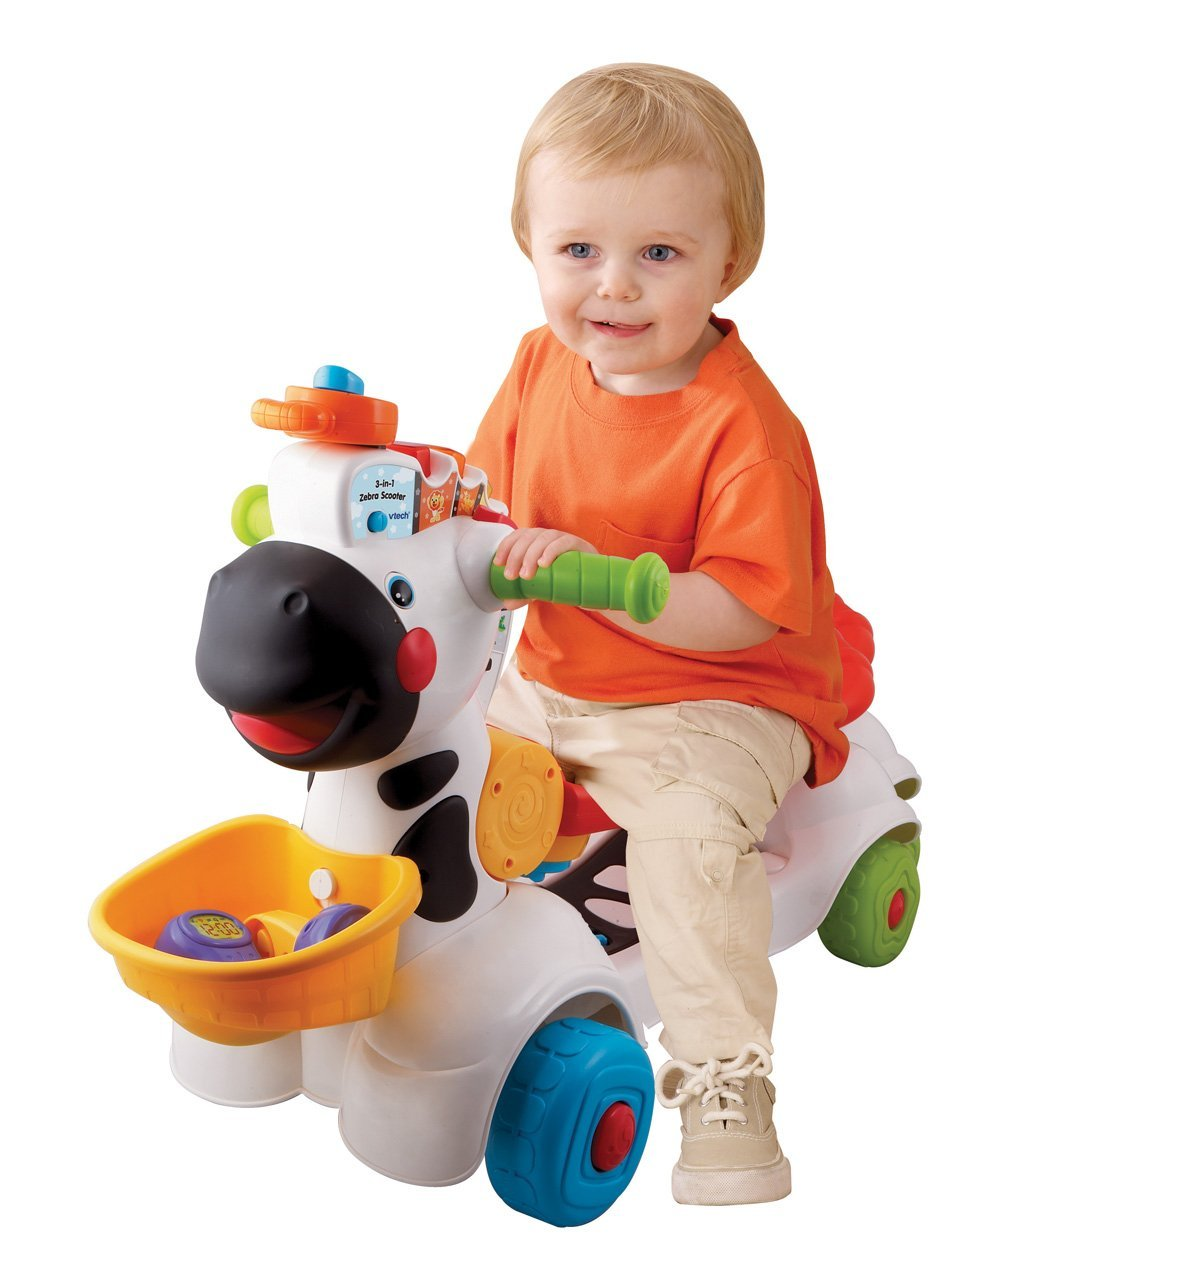 Great Toys For 3 Year Old Boys : Best gifts ideas for one year old boys first christmas